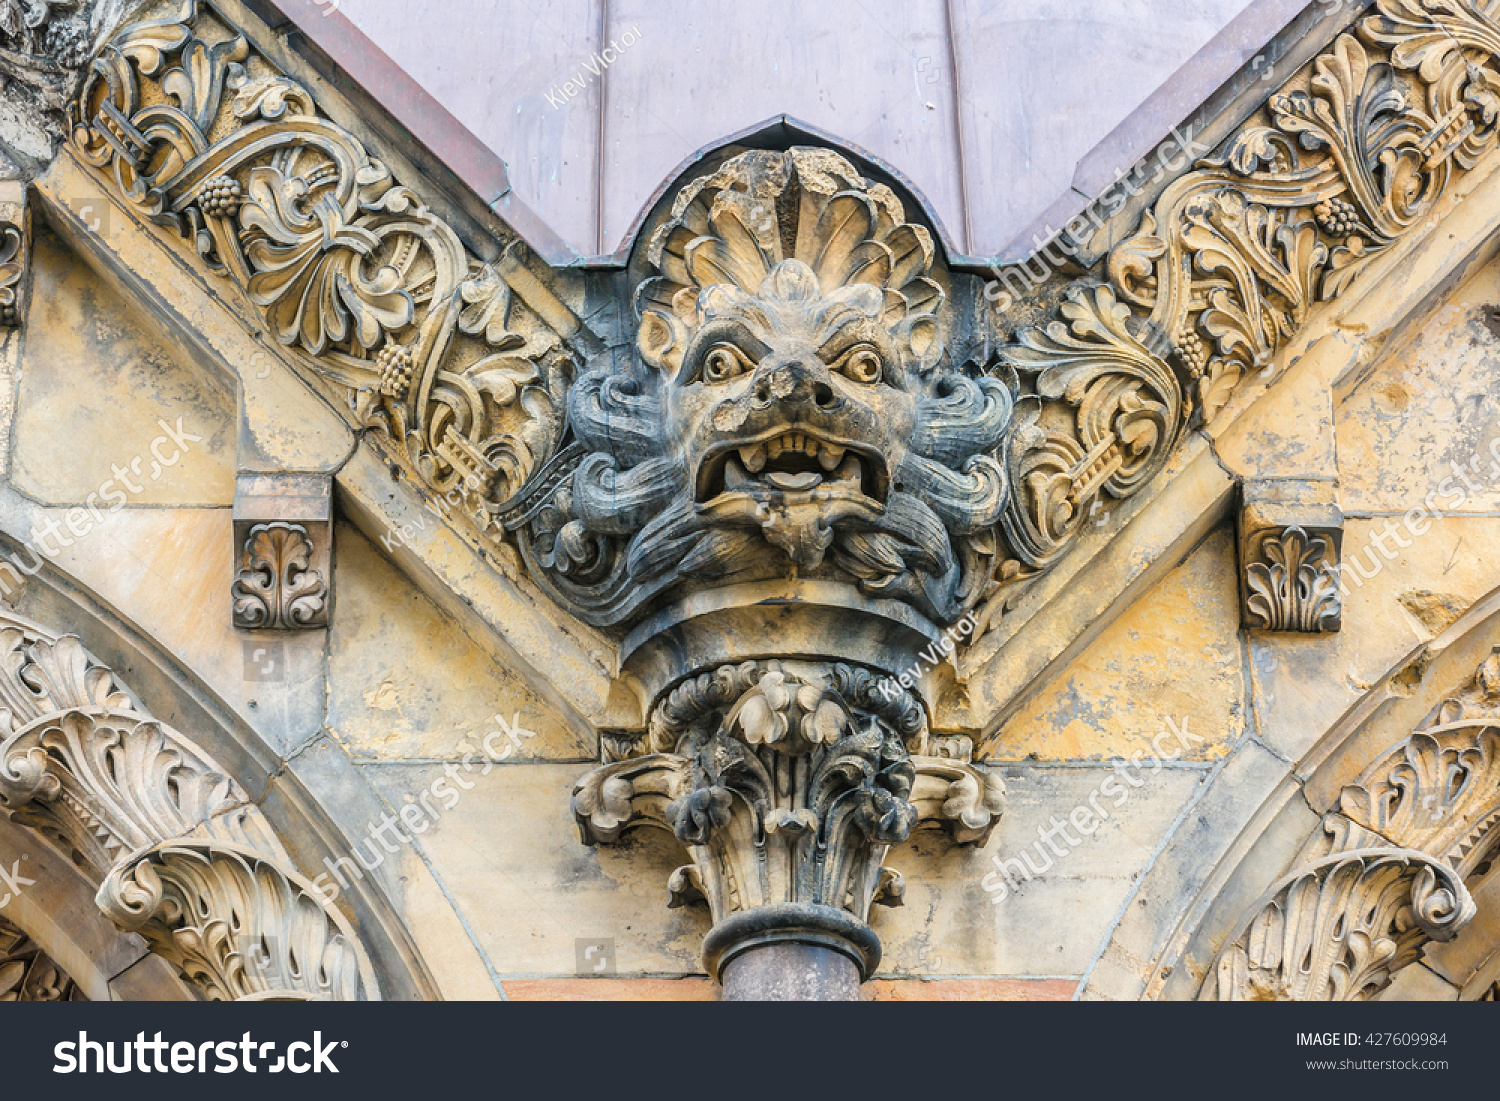 Royalty Free Architectural Detail Of Kaiser Wilhelm 427609984